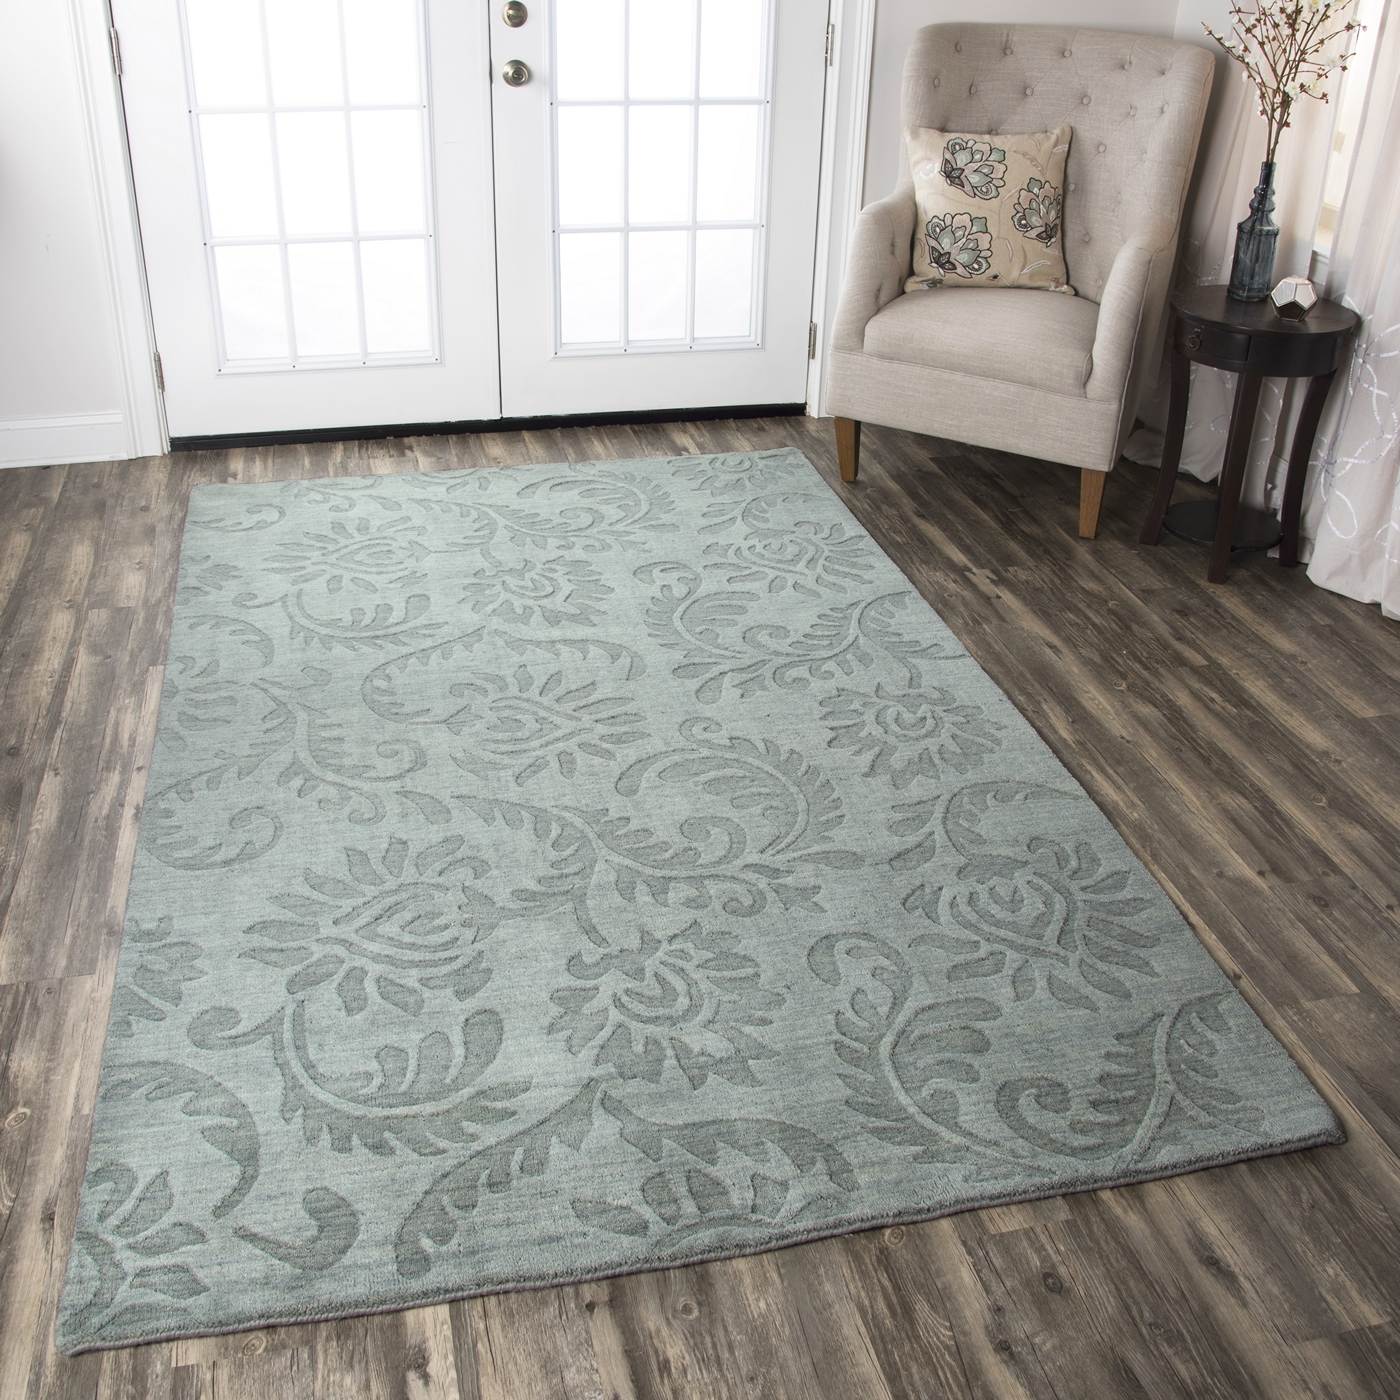 10 X 14 Area Rugs Uptown Floral Print Pattern Wool Area Rug In Grey 10 39 X 14 39